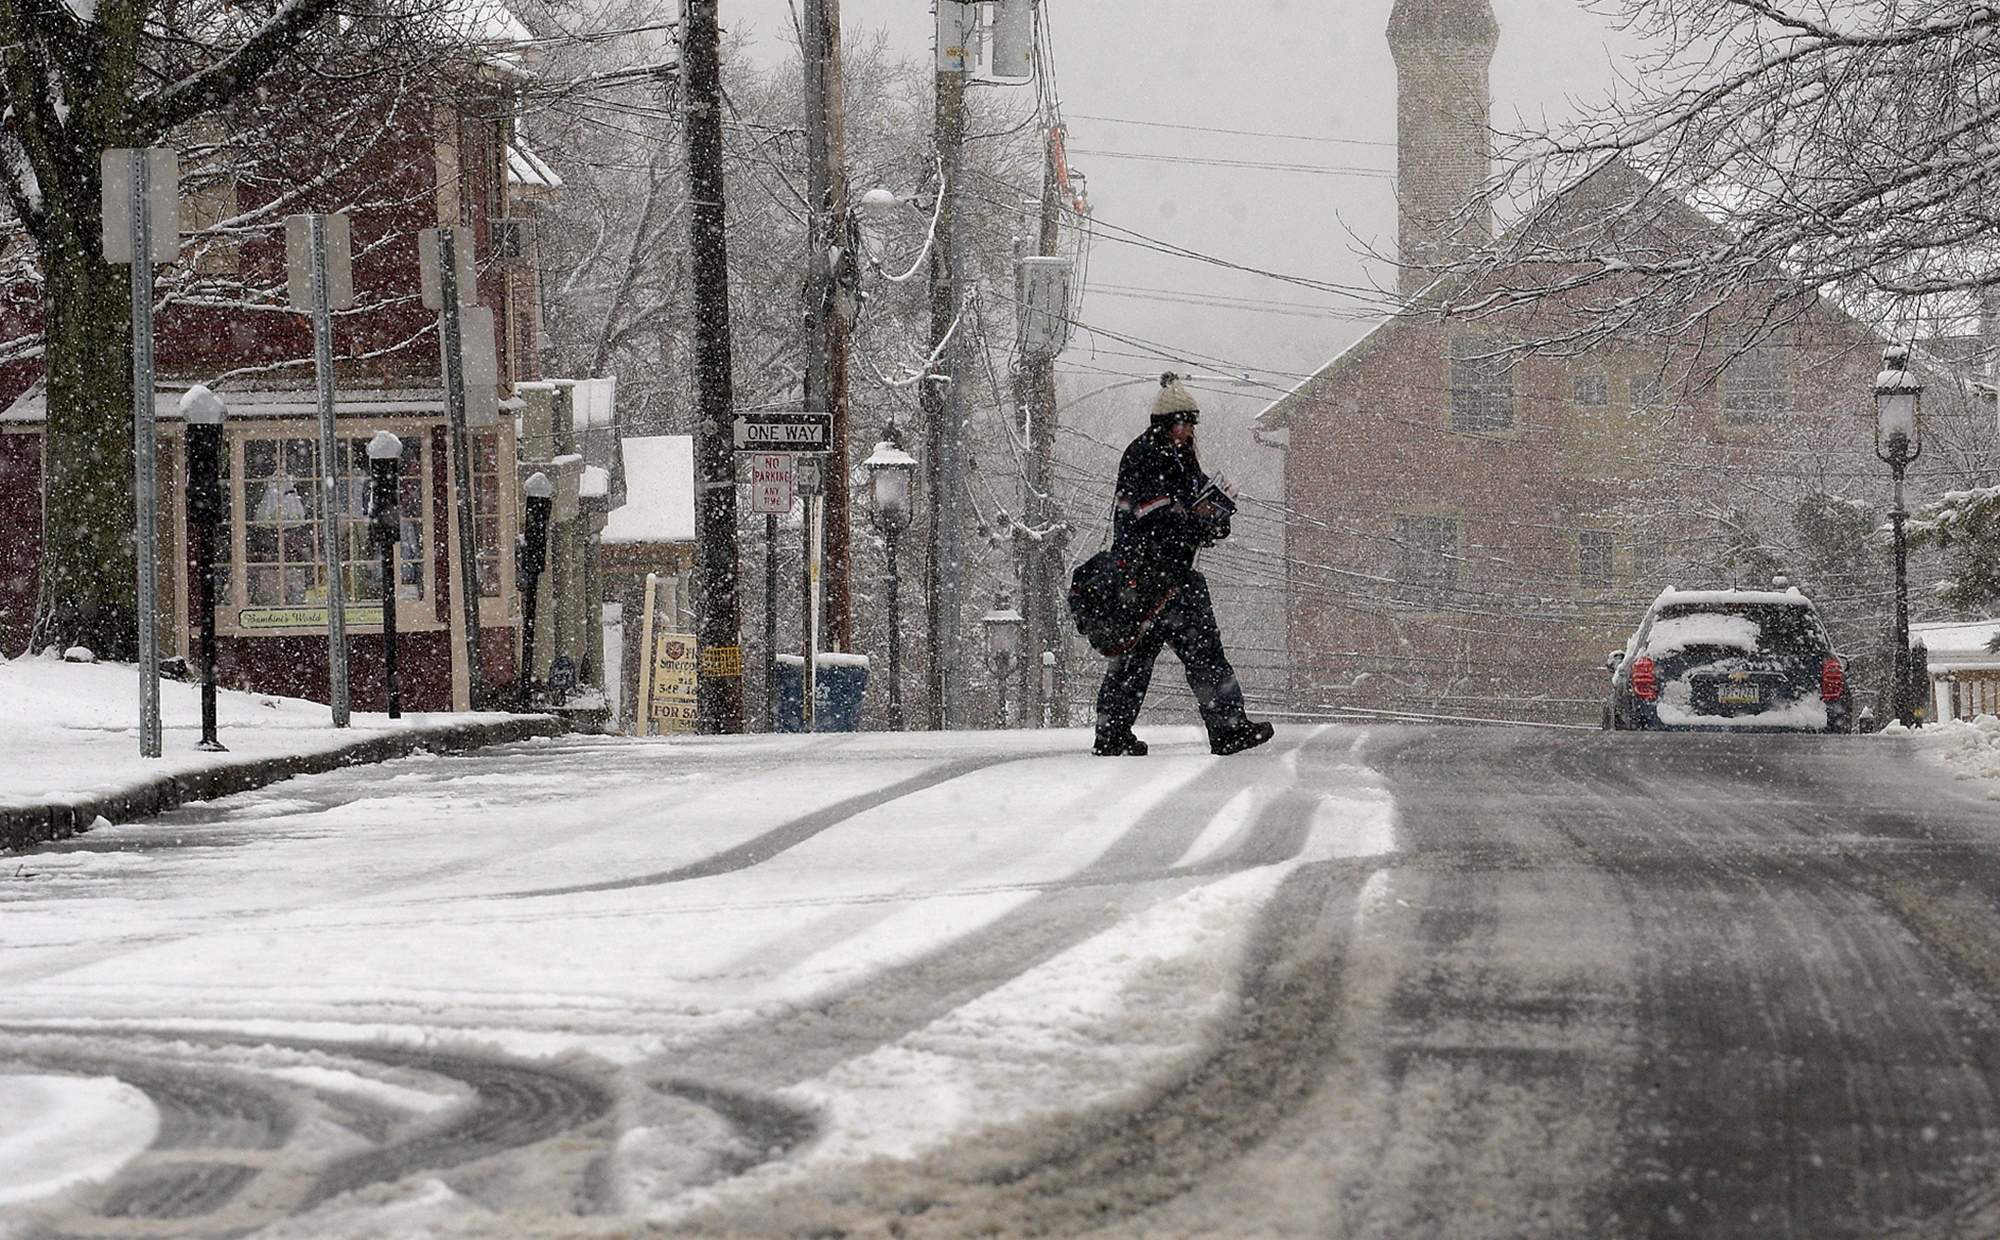 A postal worker delivers mail in the nearly deserted streets of Doylestown Borough on Wednesday, March 7, 2018, as businesses were shut down because of the storm. [KIM WEIMER / STAFF PHOTOJOURNALIST]